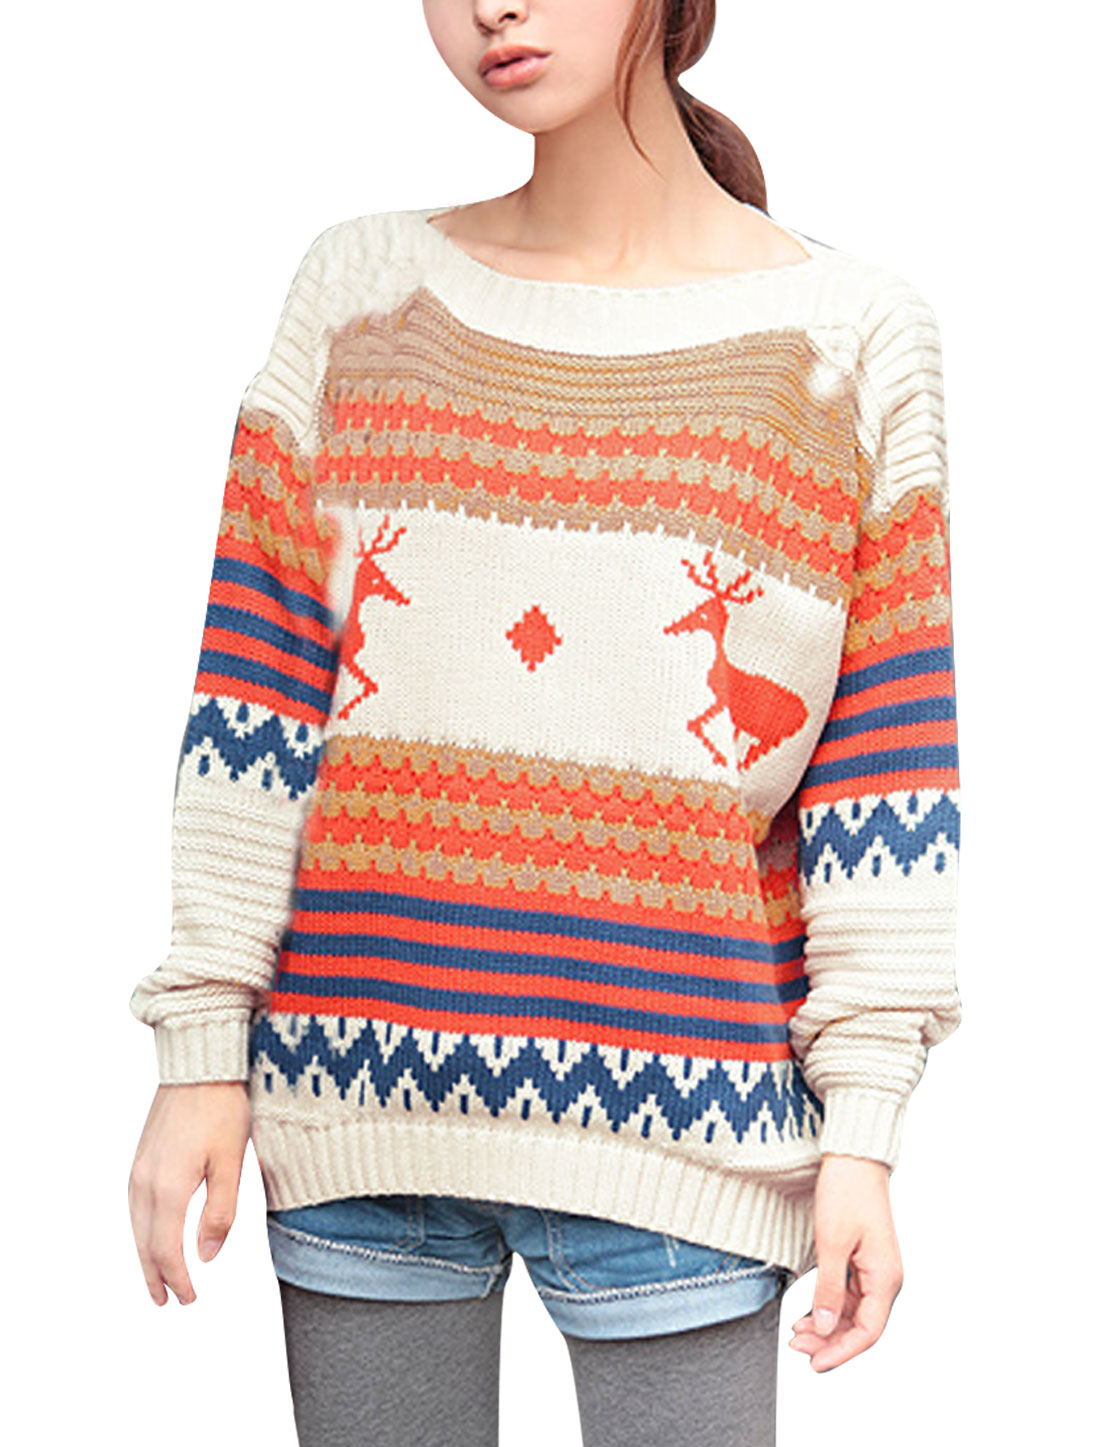 Ladies Boat Neck Long Sleeve Geometric Pattern Beige Orange Sweater S